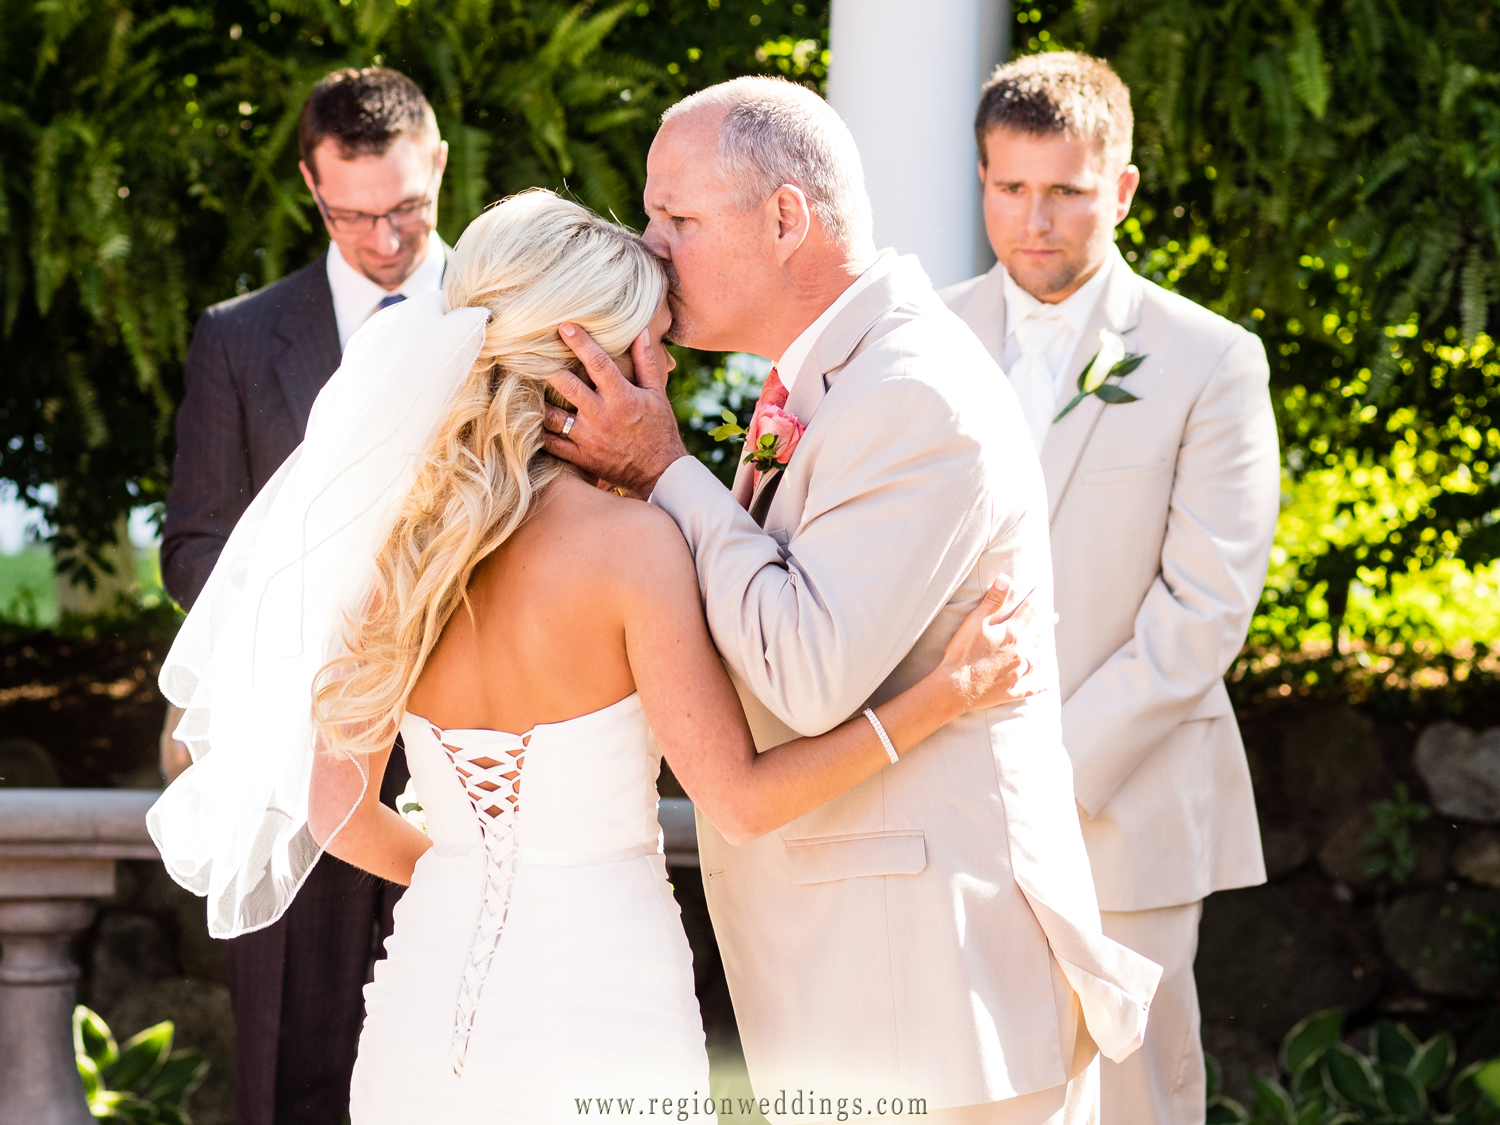 The bride's father kisses her before giving her away.